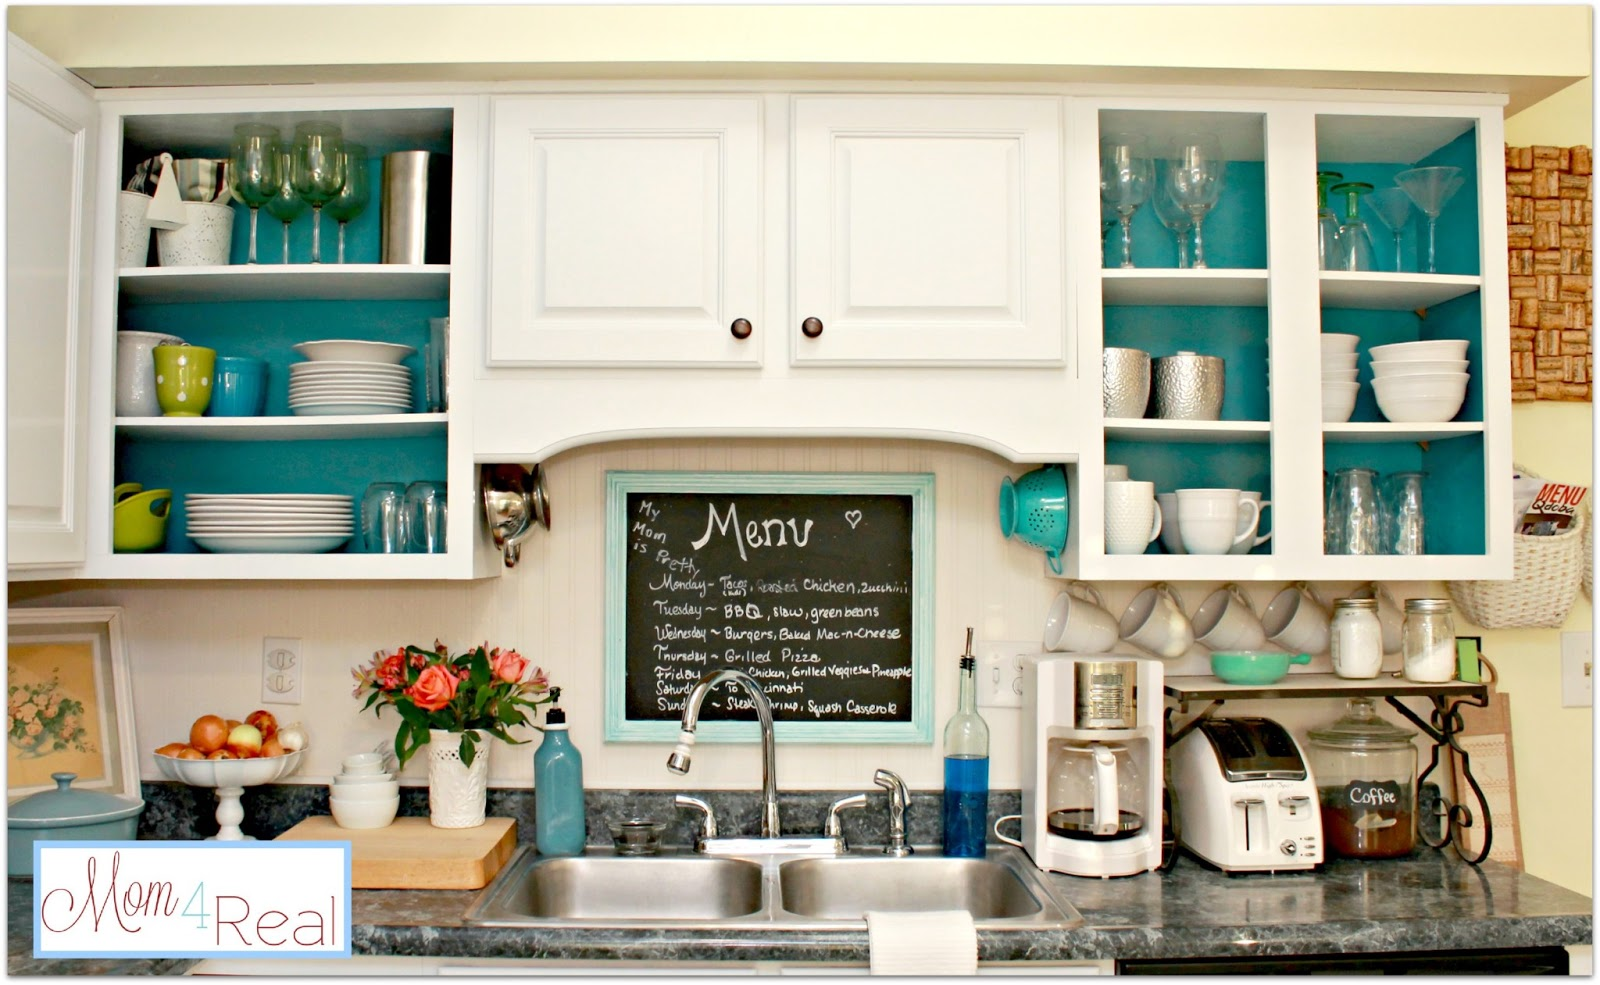 Awesome Open Cabinets With White, Aqua, Lime Green, U0026 Silver Accents